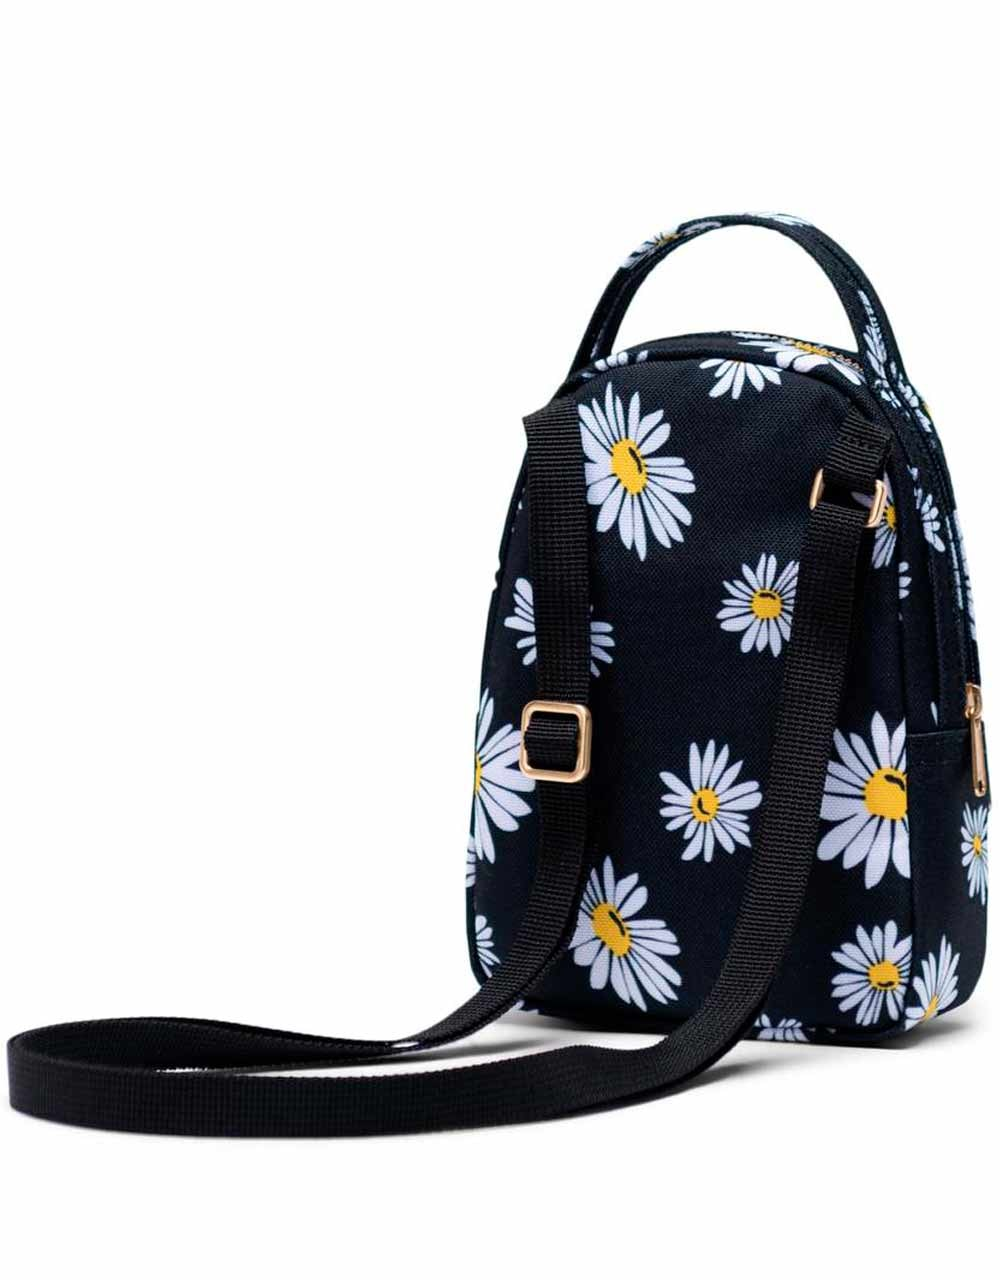 Сумка Nova Crossbody, Daisy Black